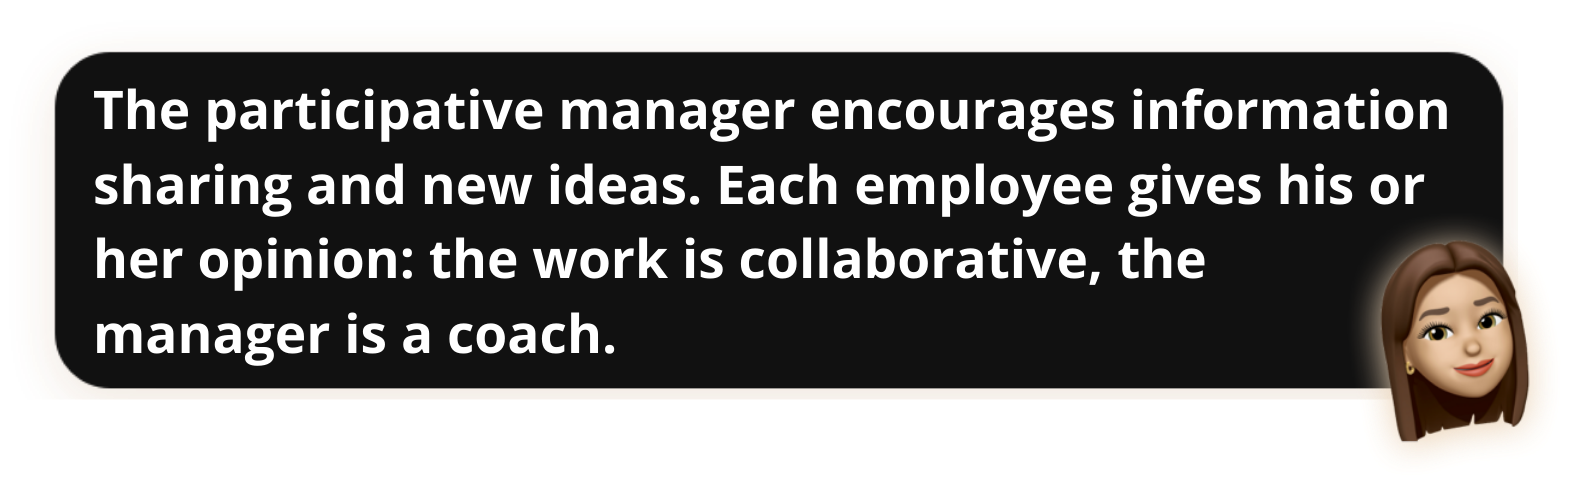 The participative manager encourages information sharing and new ideas. Each employee gives his or her opinion: the work is collaborative, the manager is a coach - Popwork